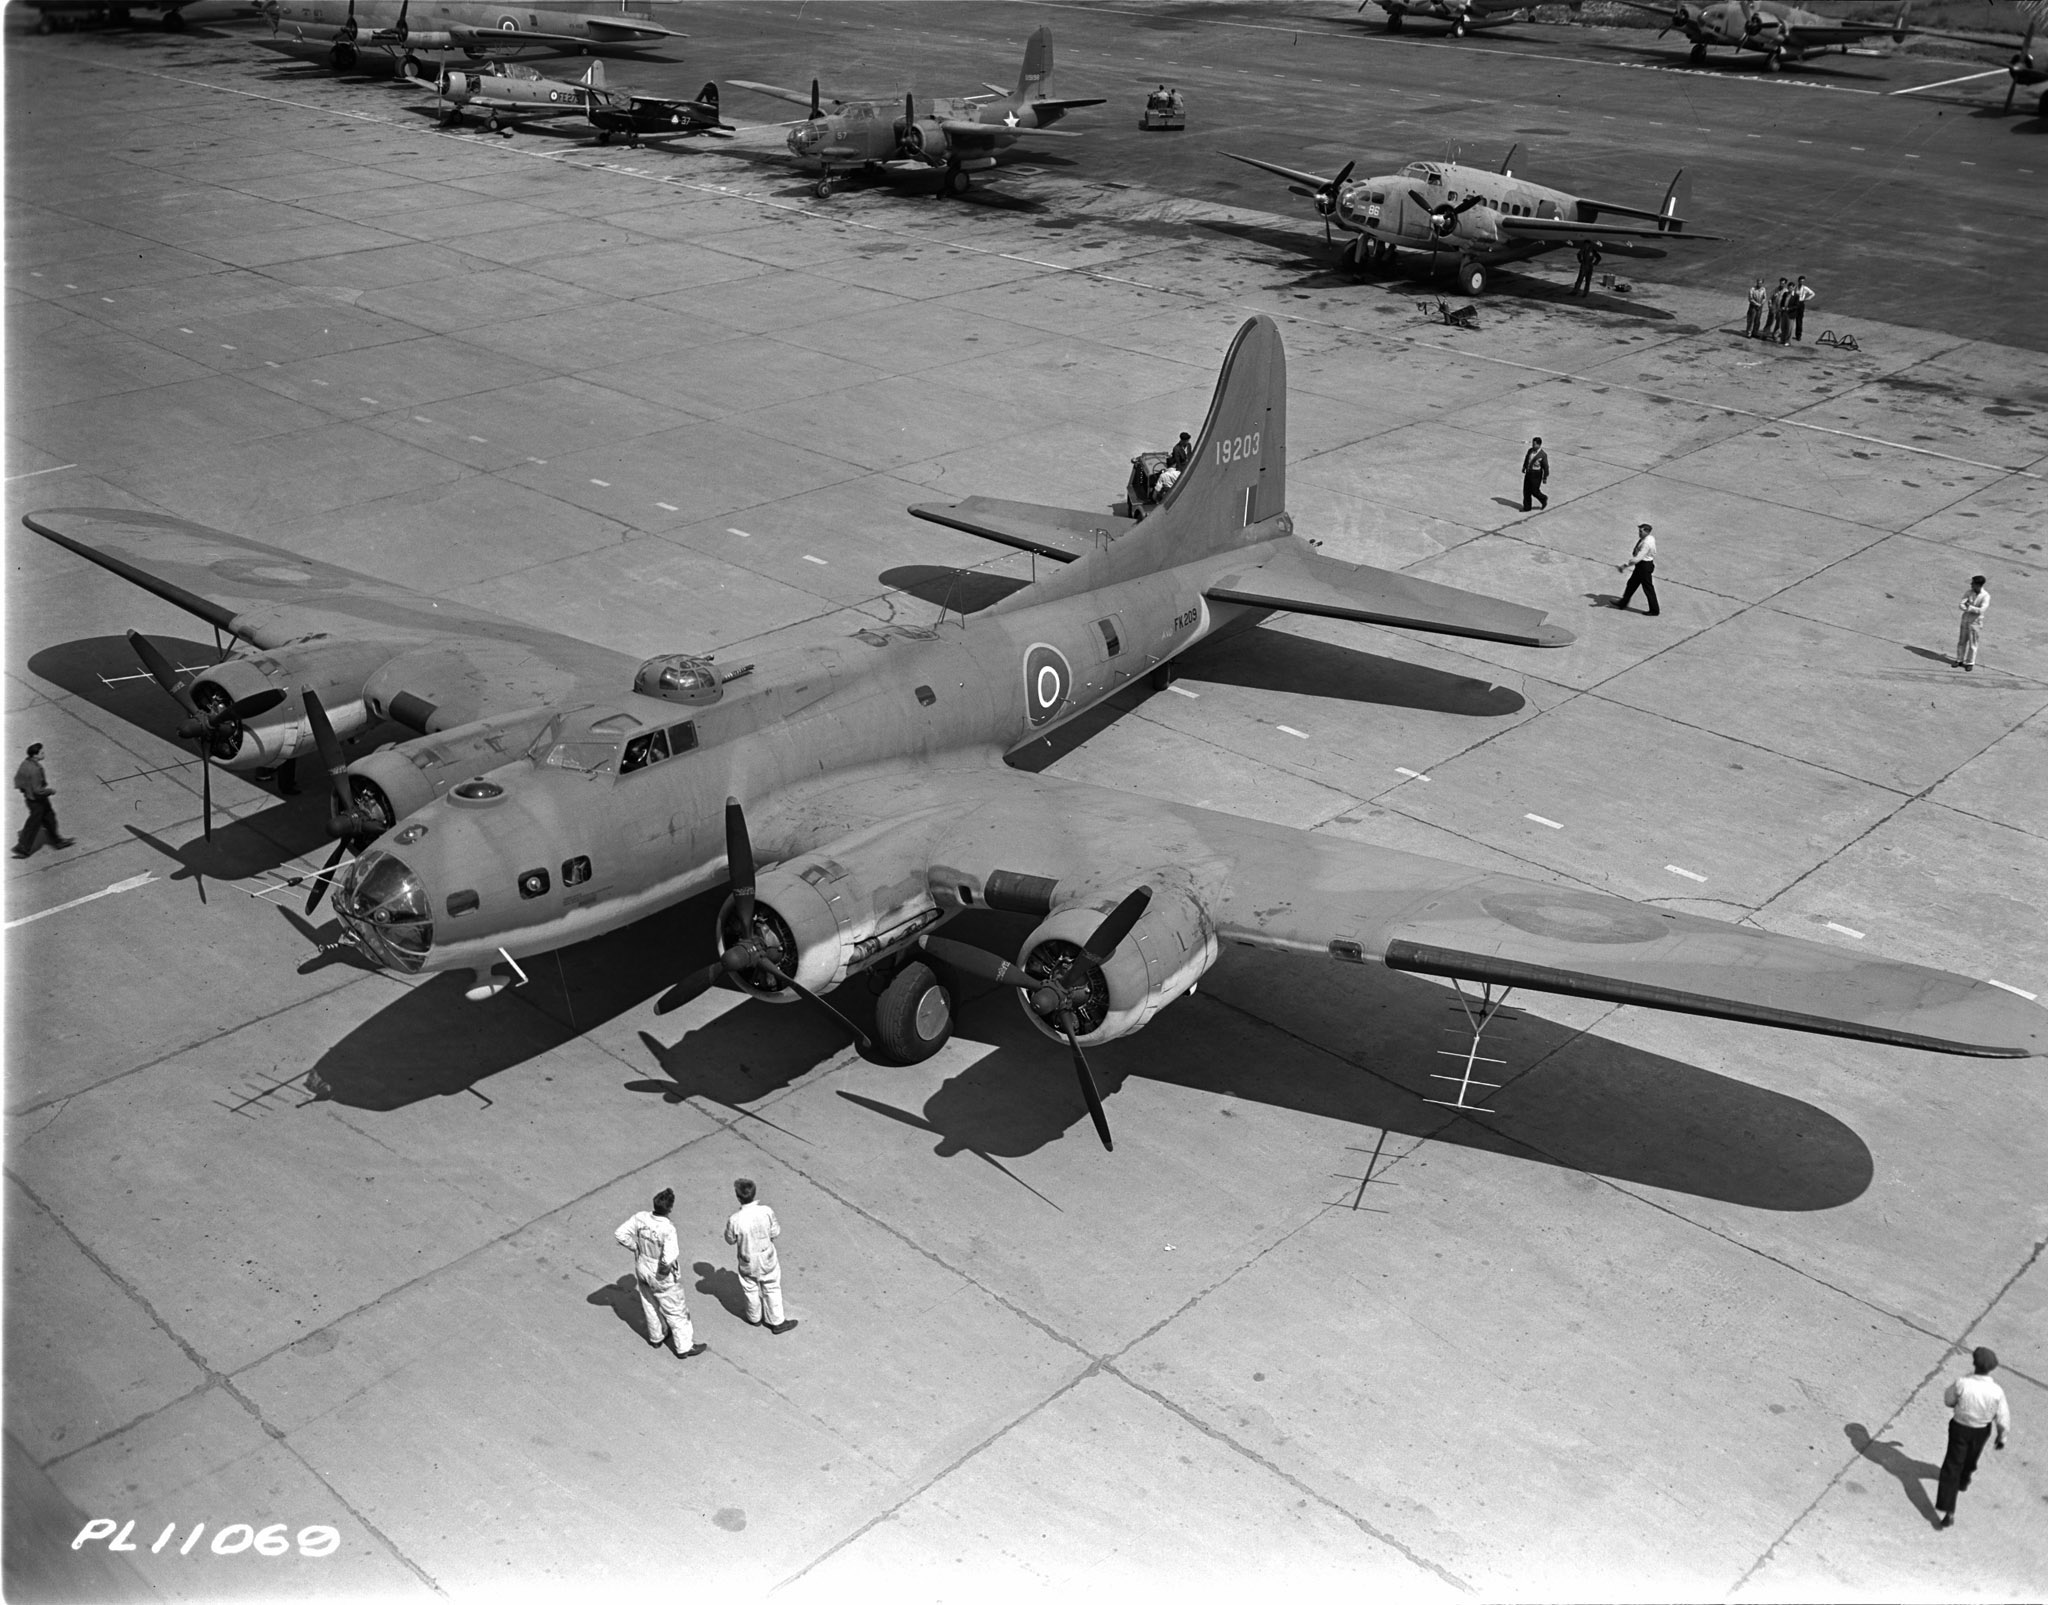 A Boeing B-17 Flying Fortress at Dorval Airport. PHOTO: DND Archives, PL-11069